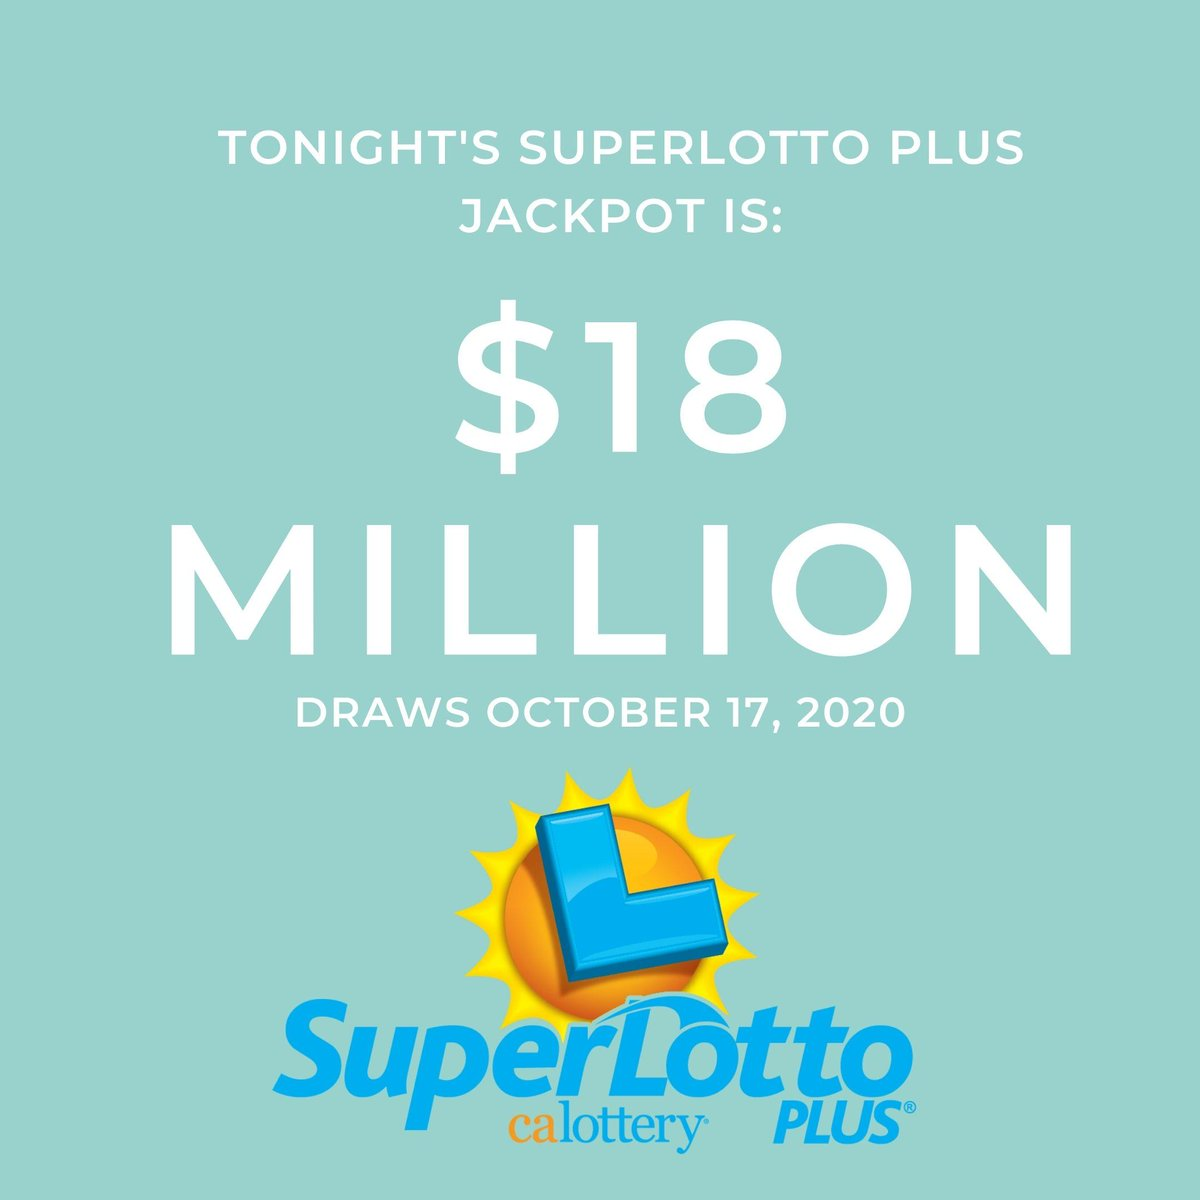 Tonight's #SuperlottoPlus jackpot is $18 Million. Your chance to play is just $1 away! #JackpotAlert #calottery https://t.co/oP6LQ37dAF